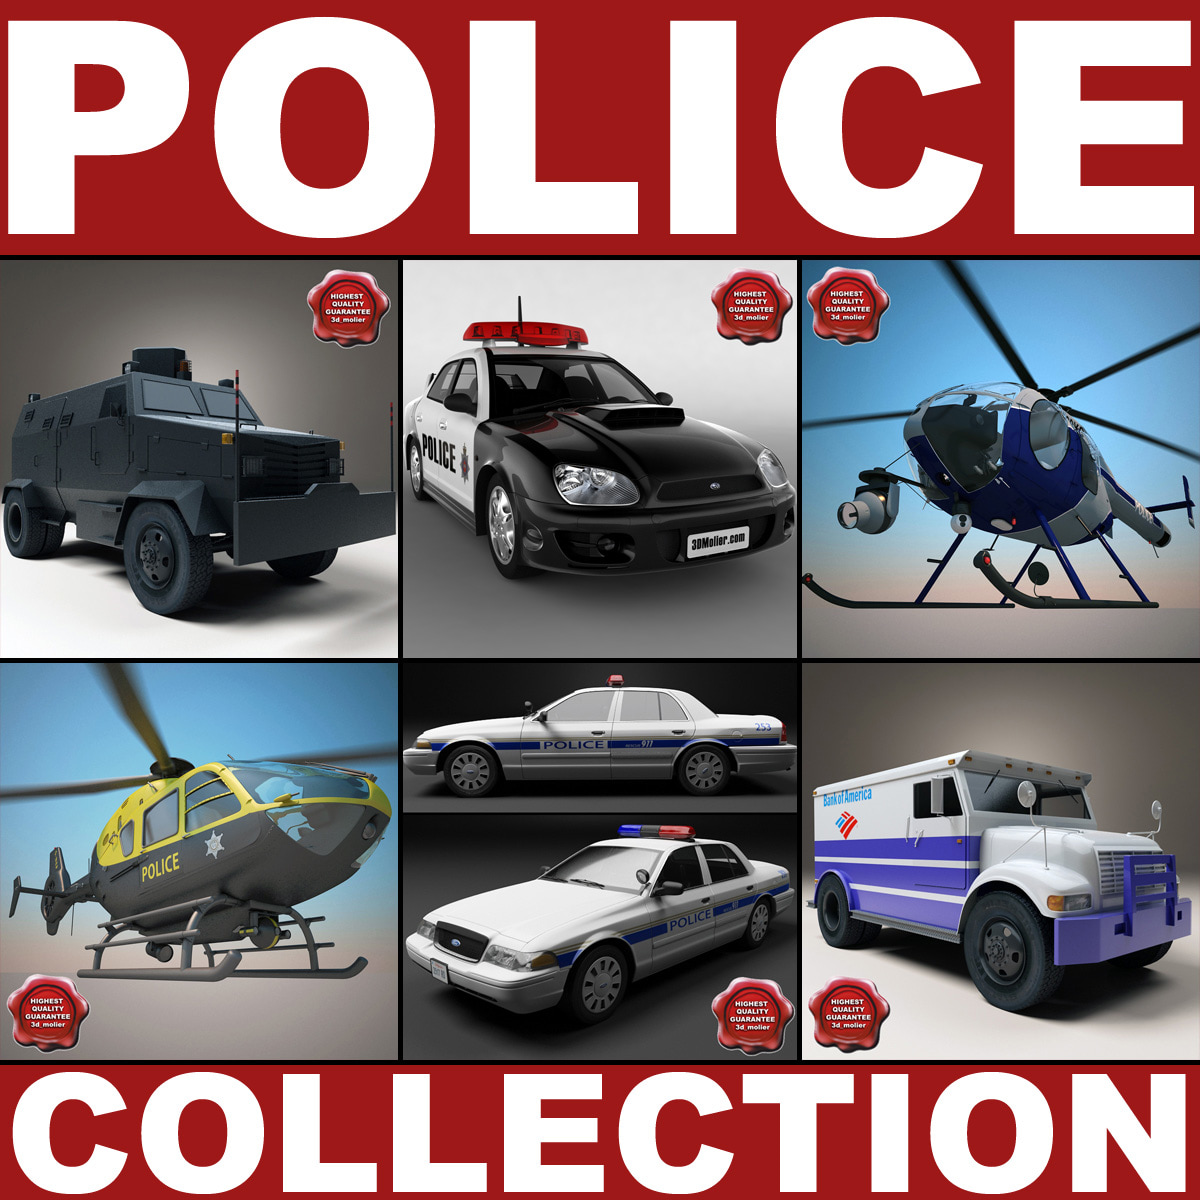 Police_Vehicles_Collection_V2_000.jpg